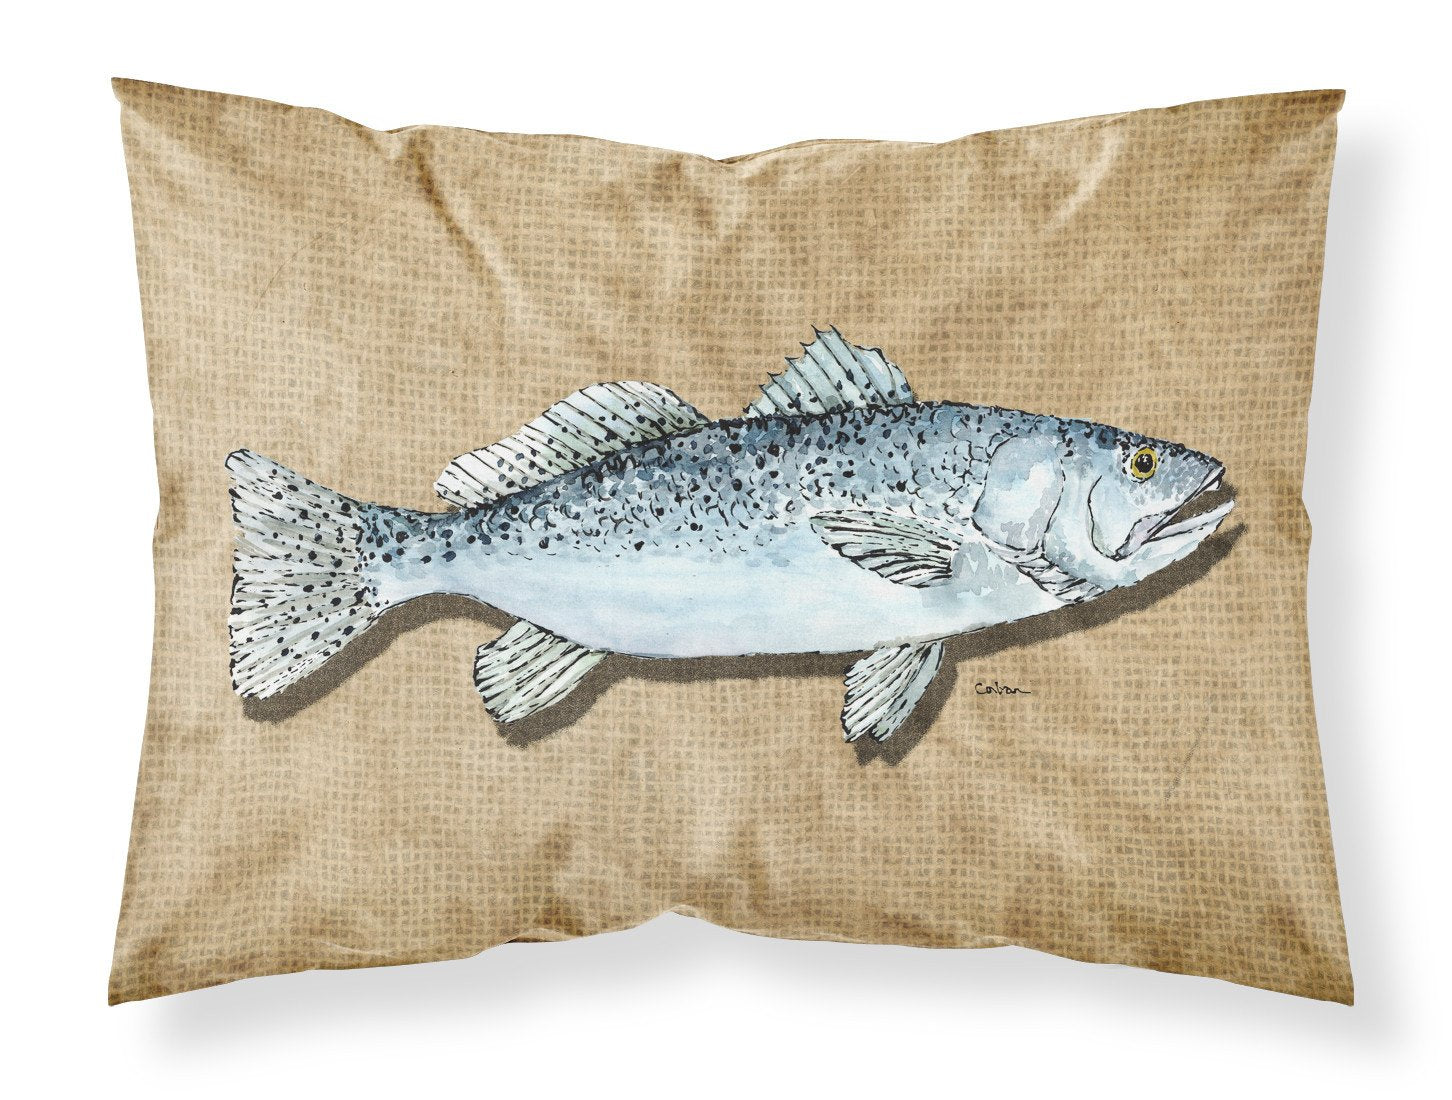 Speckled Trout Moisture wicking Fabric standard pillowcase by Caroline's Treasures